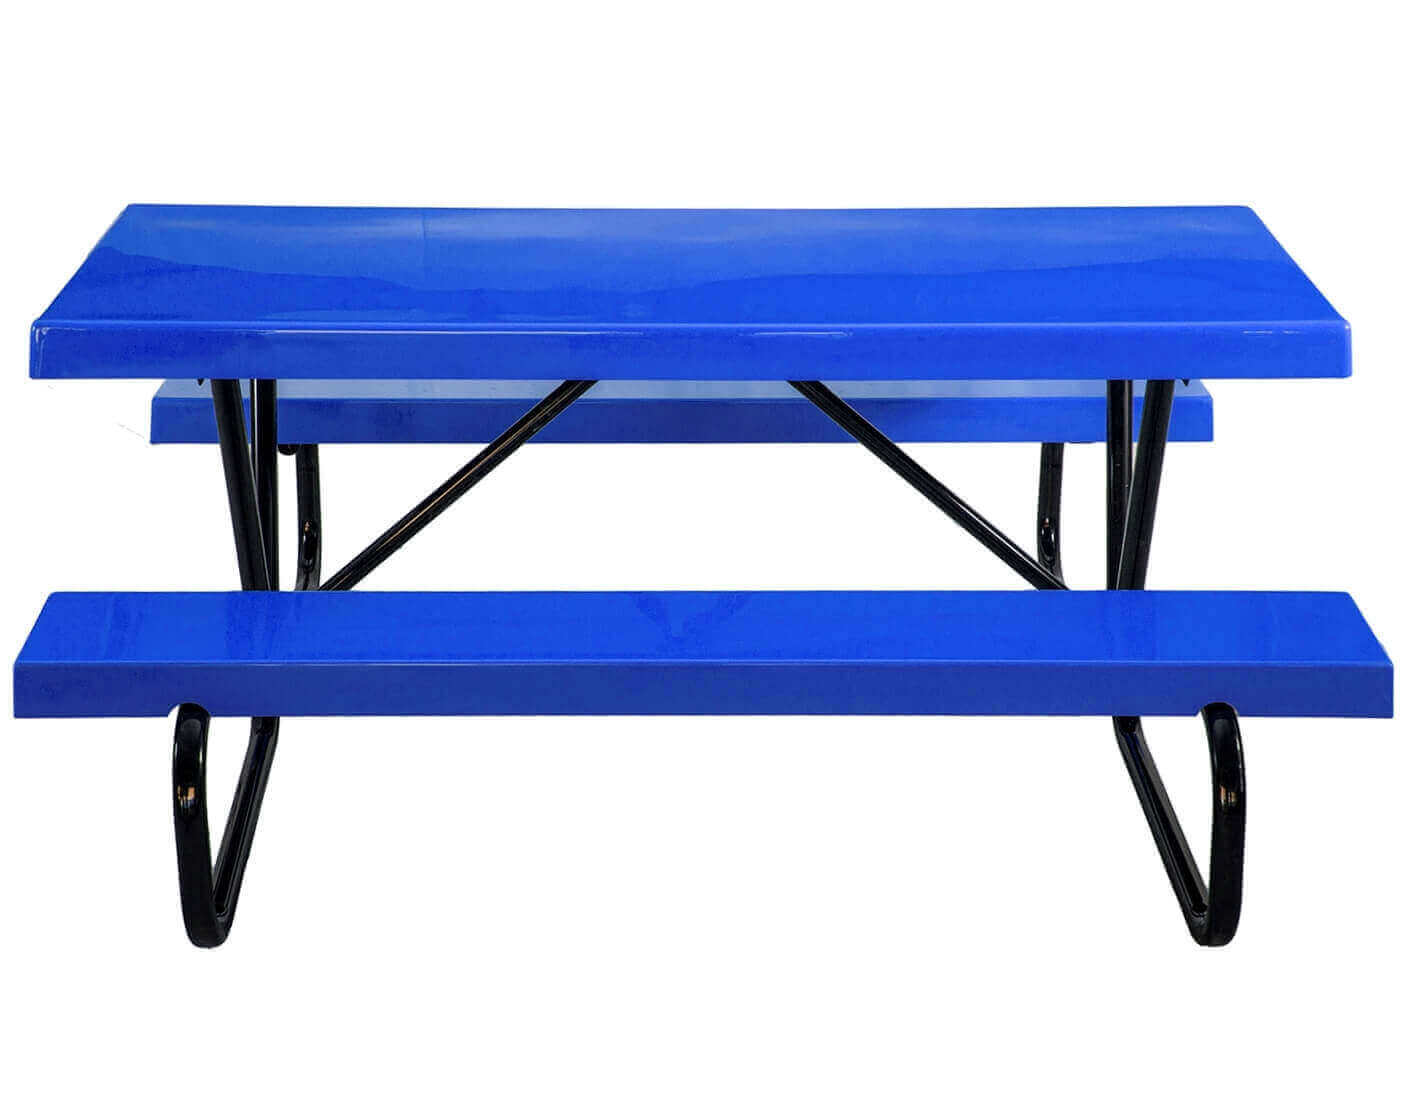 8 ft fiberglass picnic table with bolted 1 5 8 o d tube steel